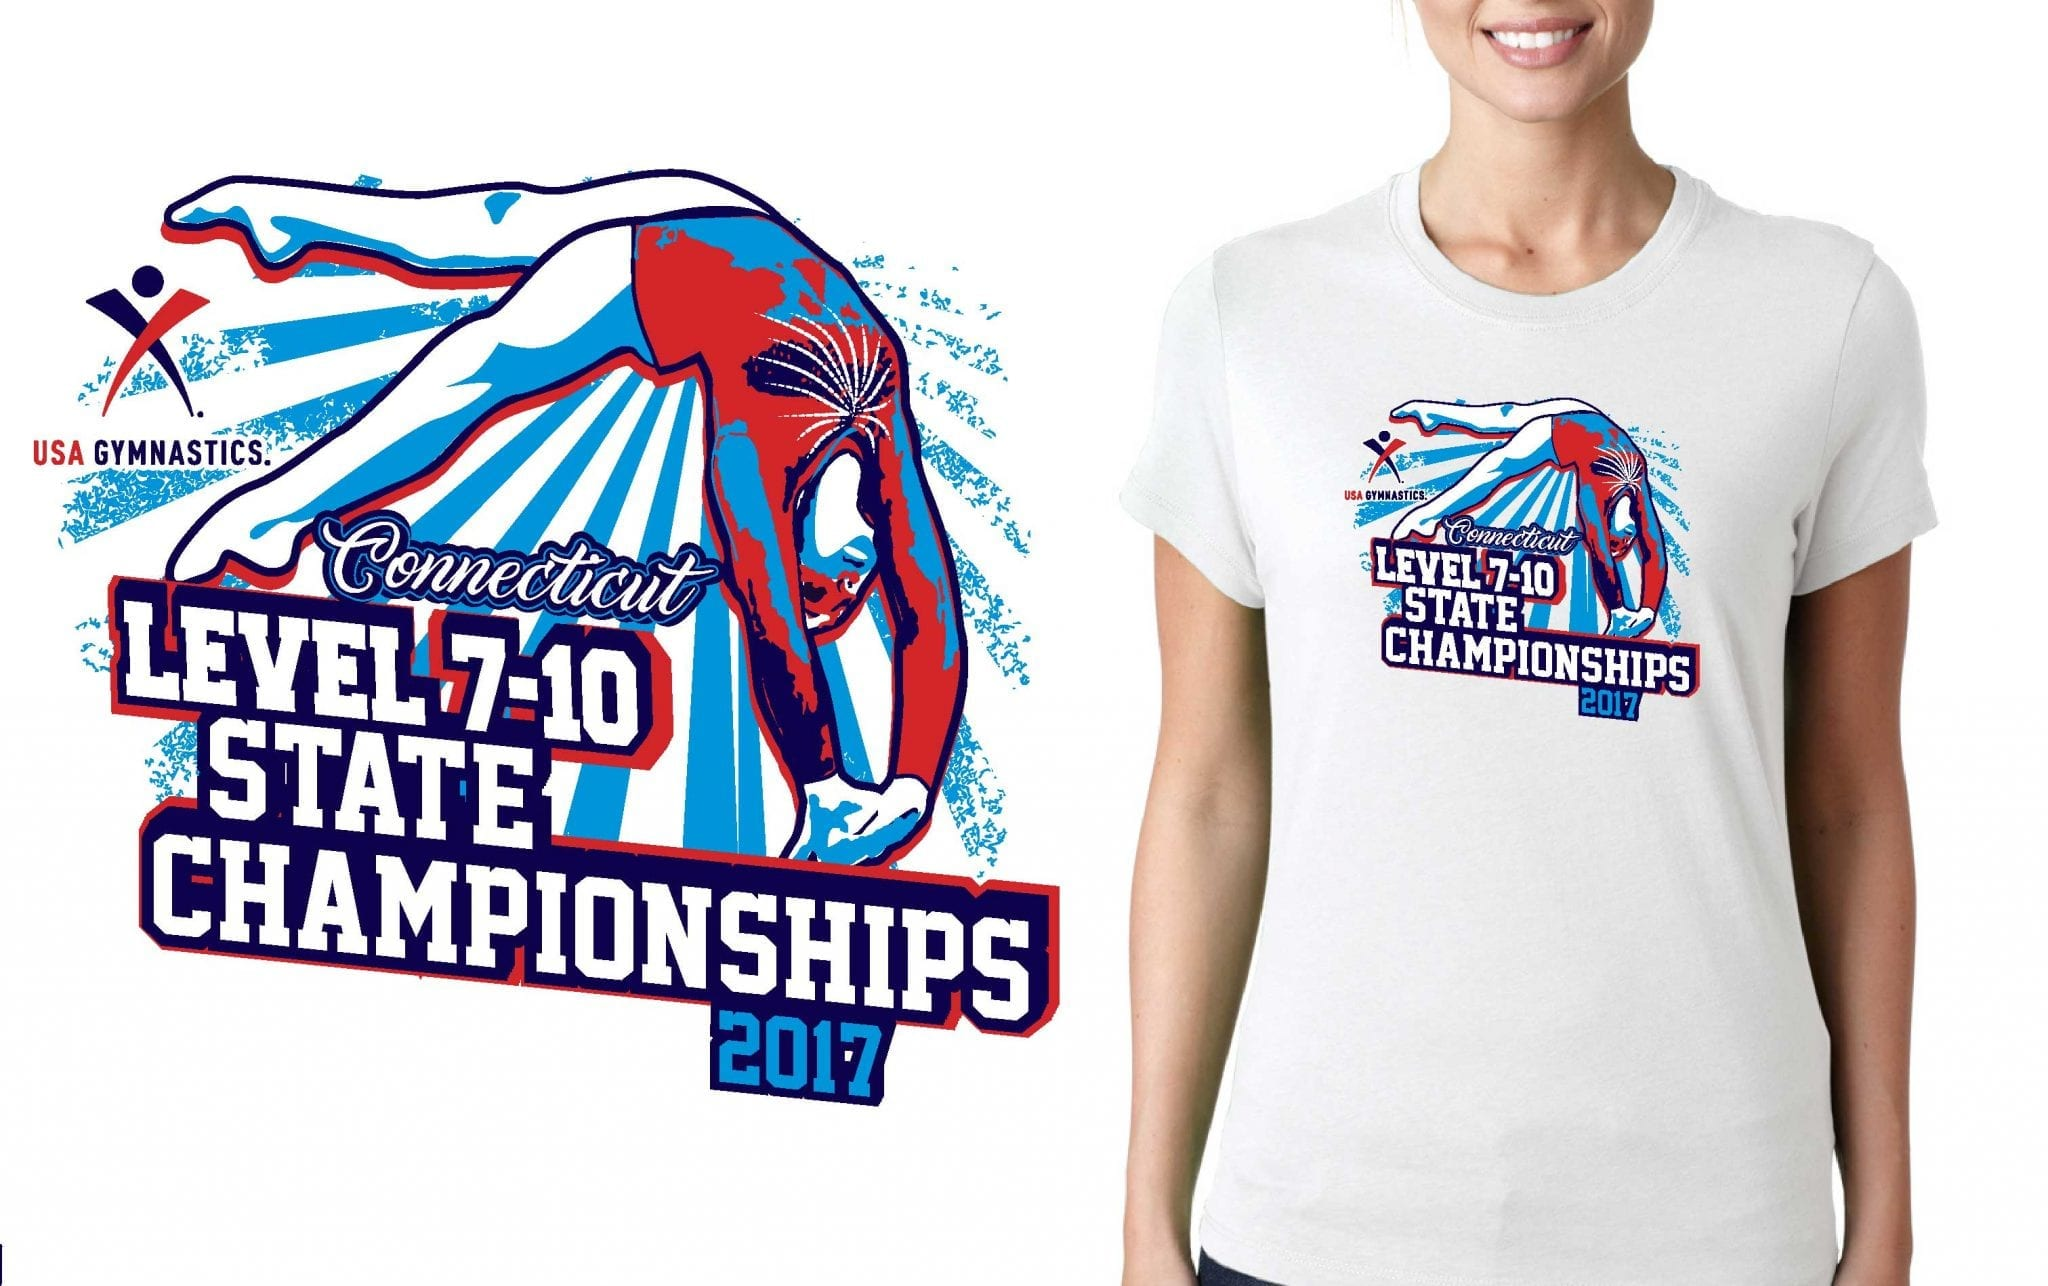 Gymnastics t shirt logo design ct level 7 10 state Gymnastics t shirt designs